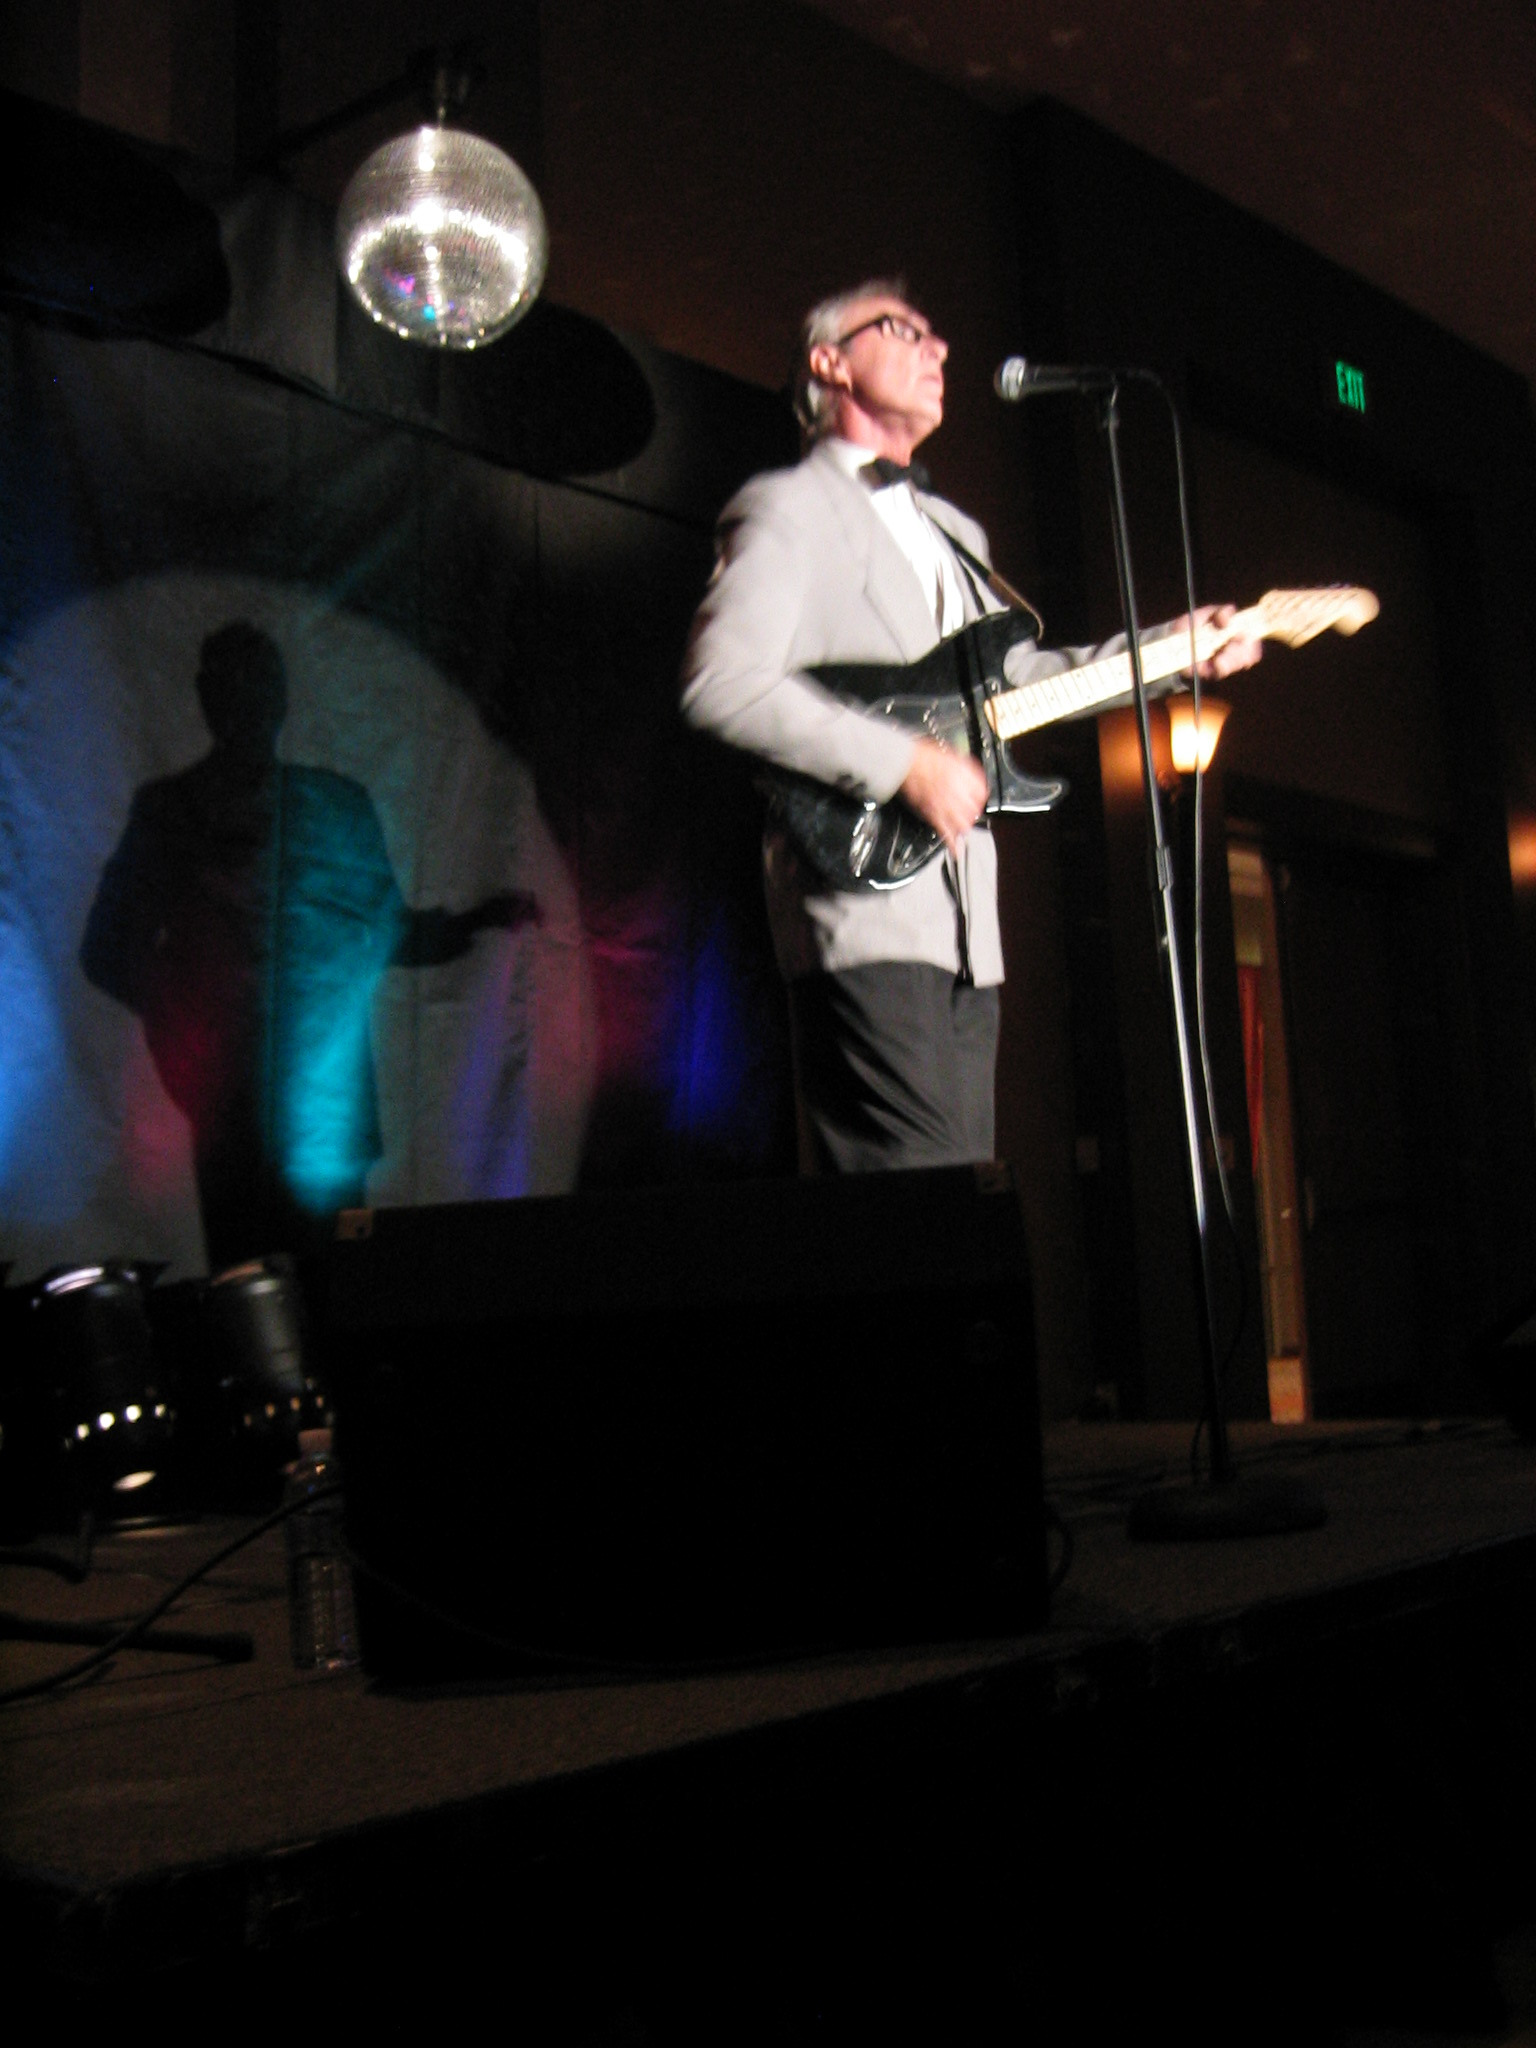 jerry connelly as buddy holly, bay city, empire entertainment, legends live